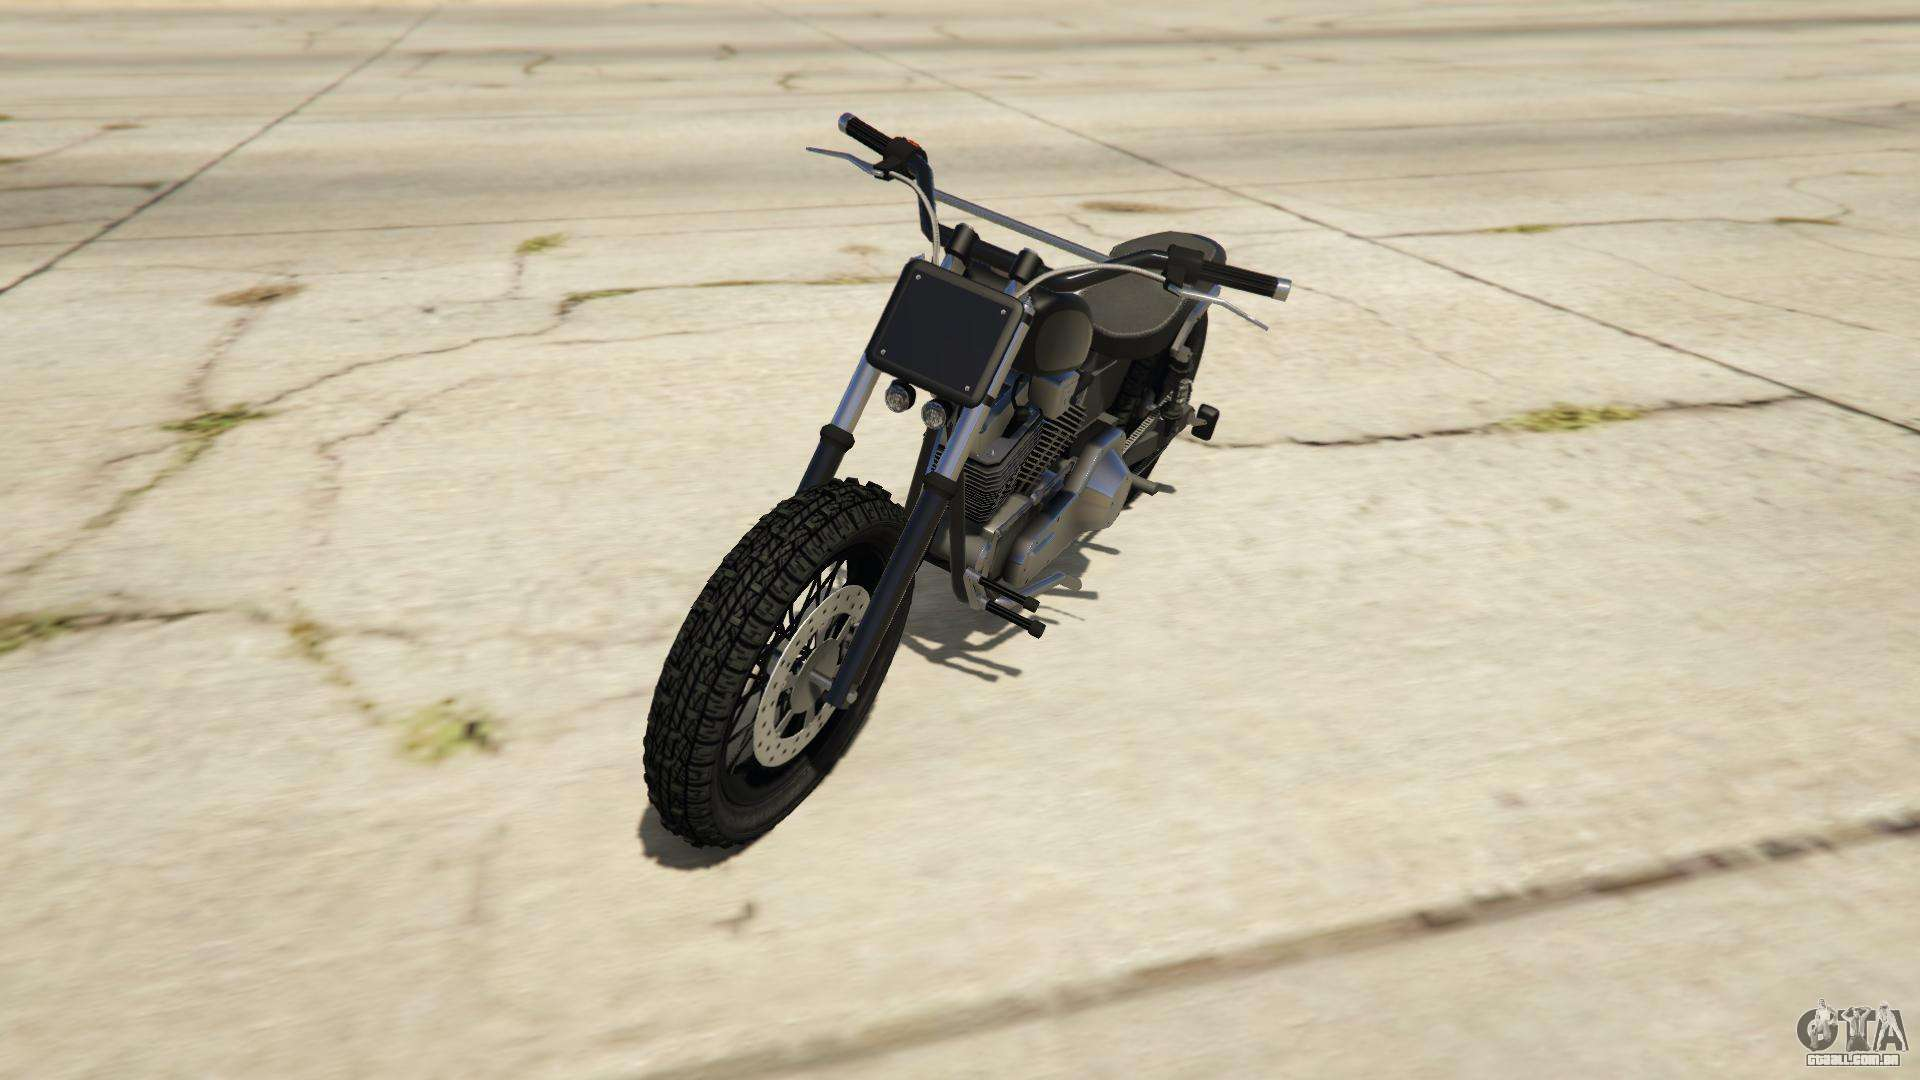 Western Motorcycle Company Cliffhanger do GTA Online - vista frontal